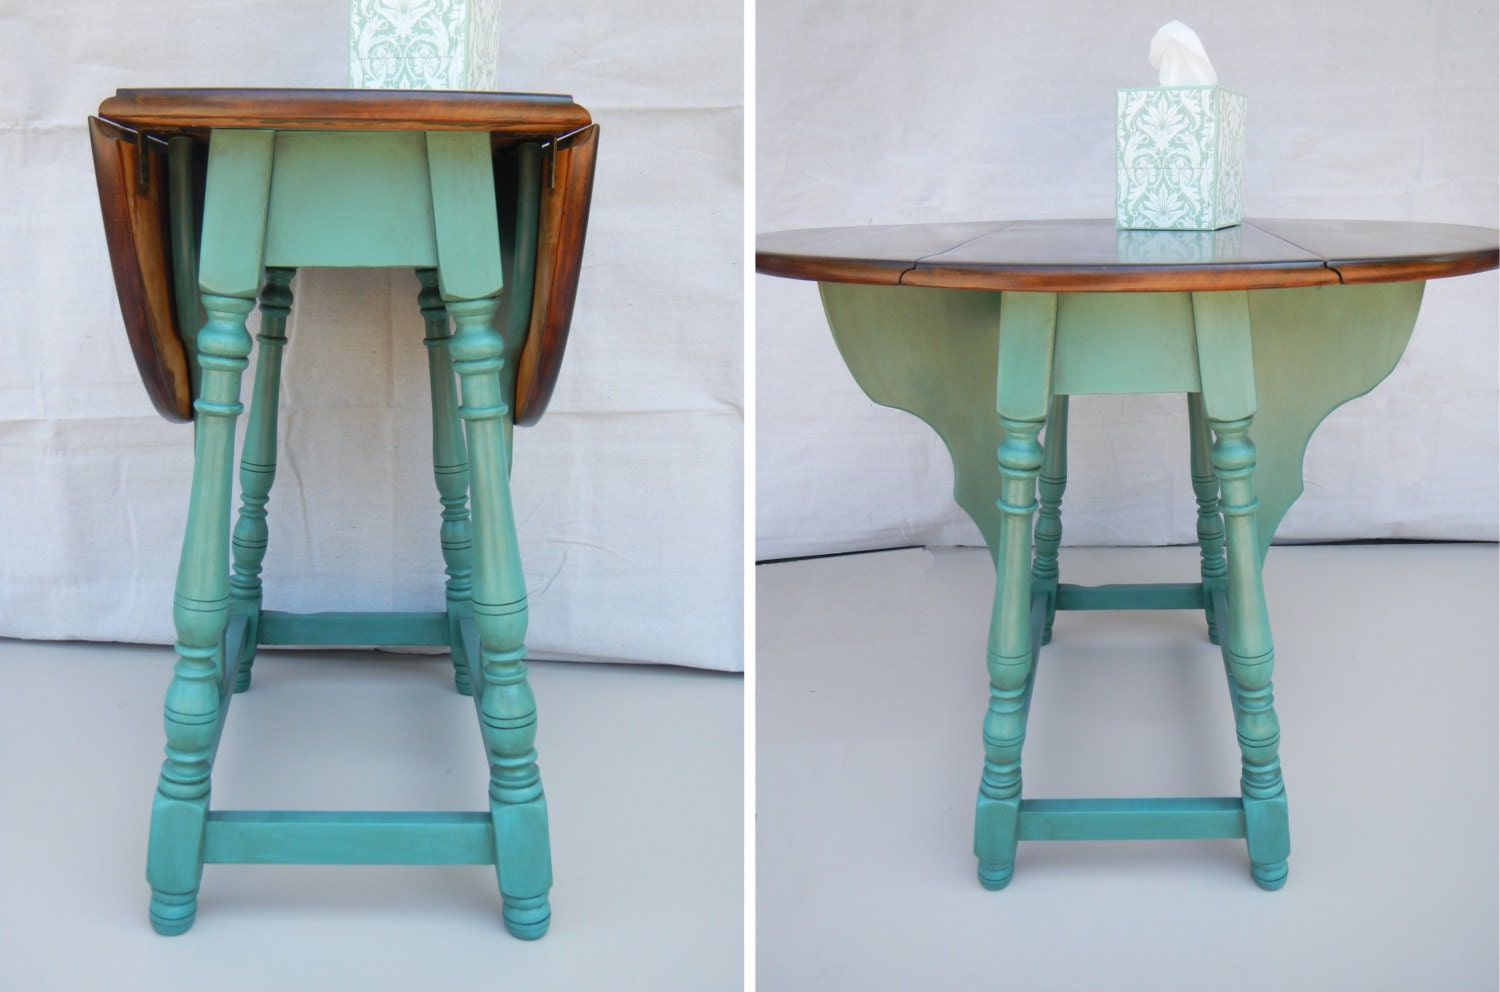 Restored Antique Butterfly Drop Leaf Table By